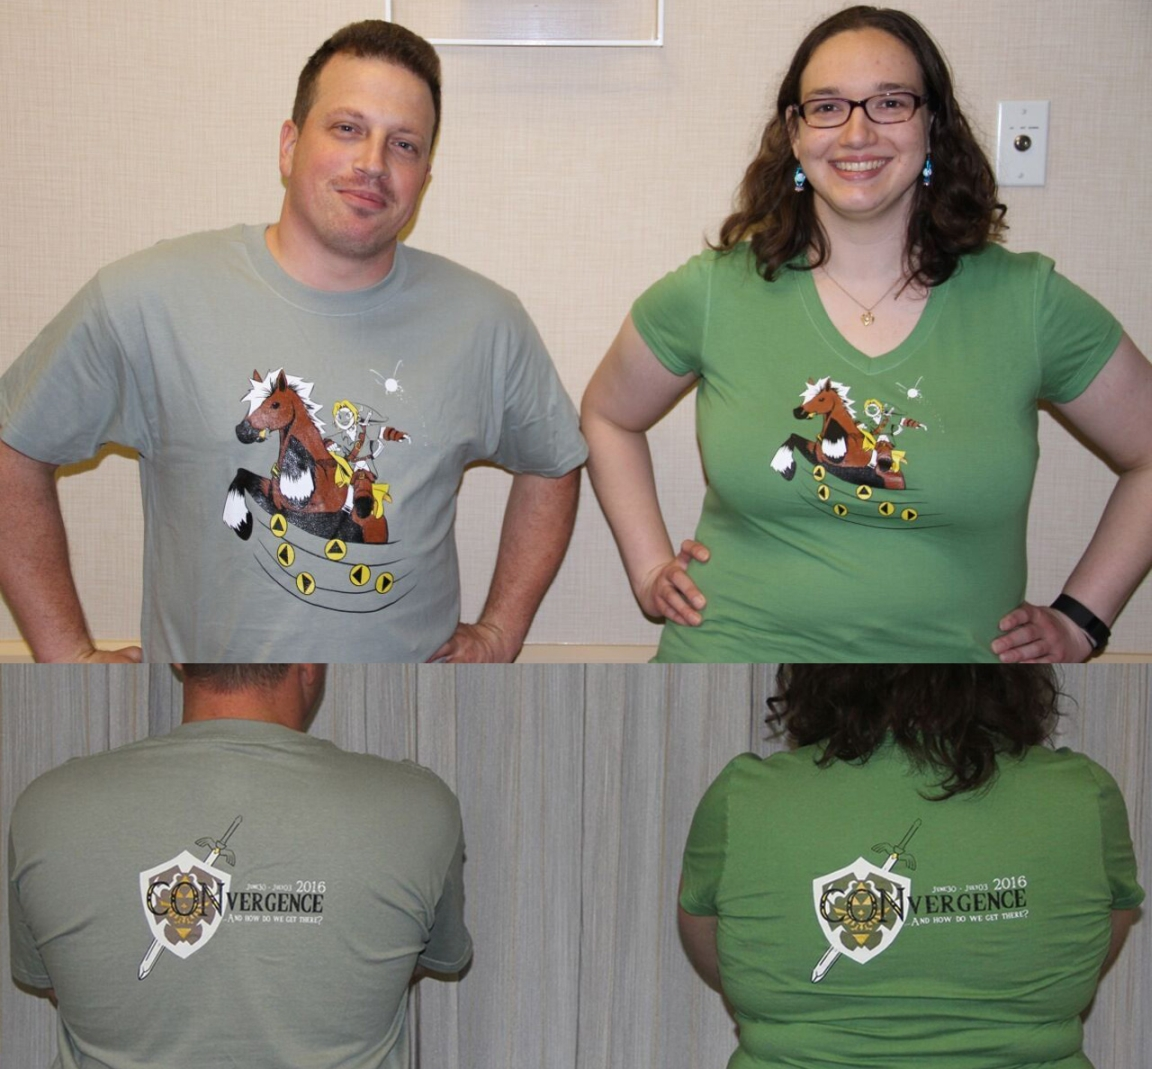 27ec0af7c4 Man and Woman modeling t-shirts featuring Connie dressed as Link, riding a  horse